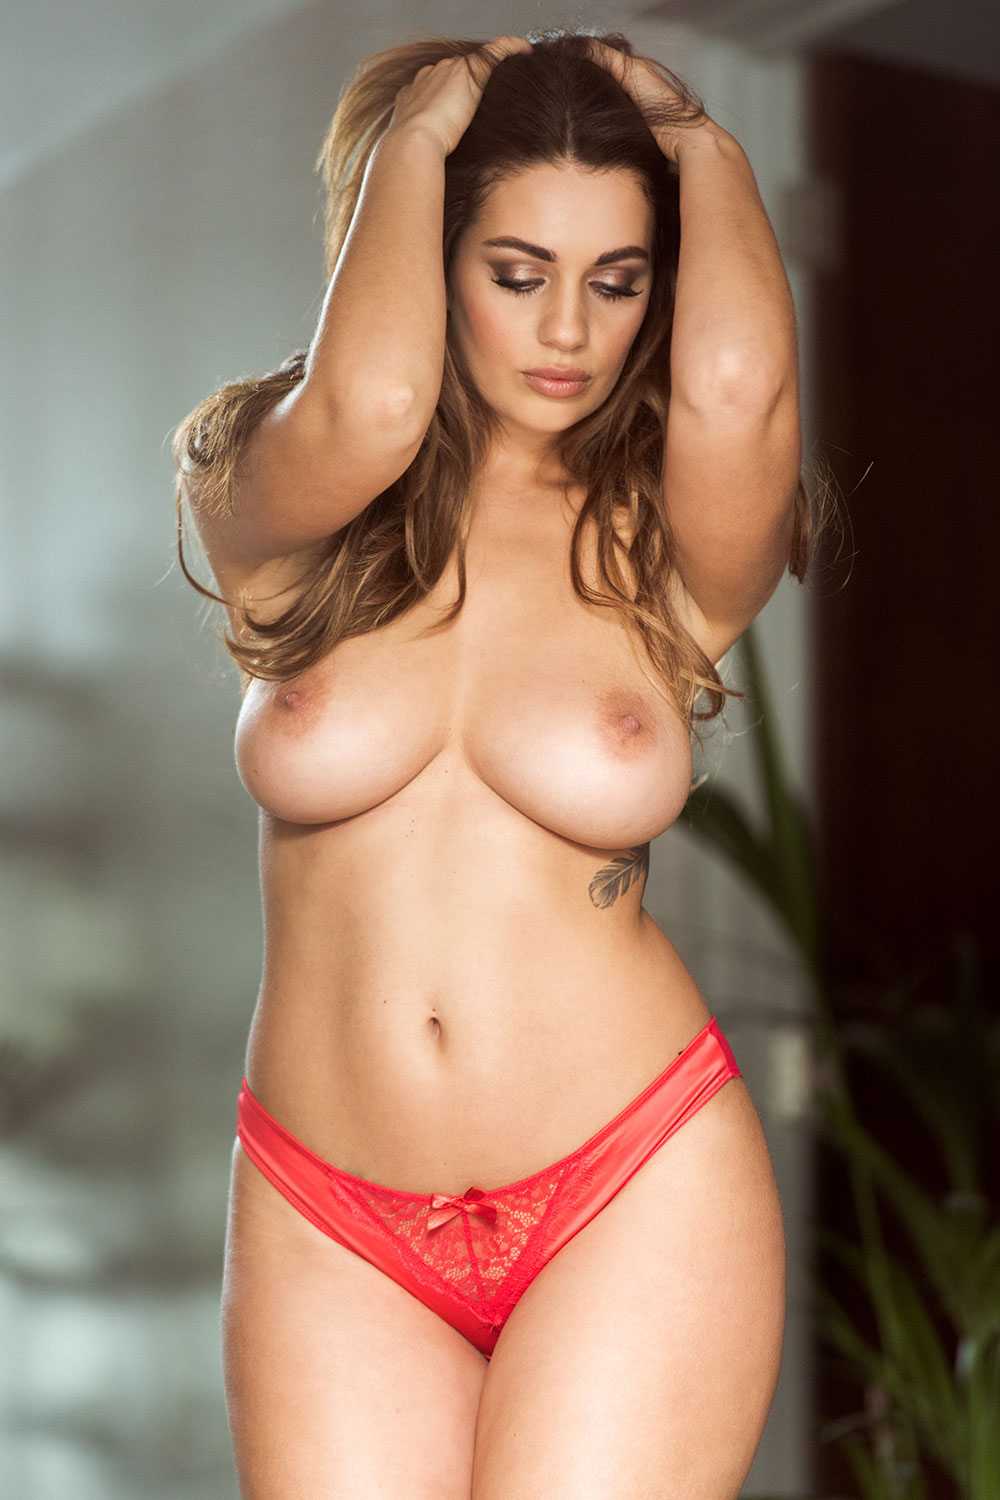 Holly peers tits nude